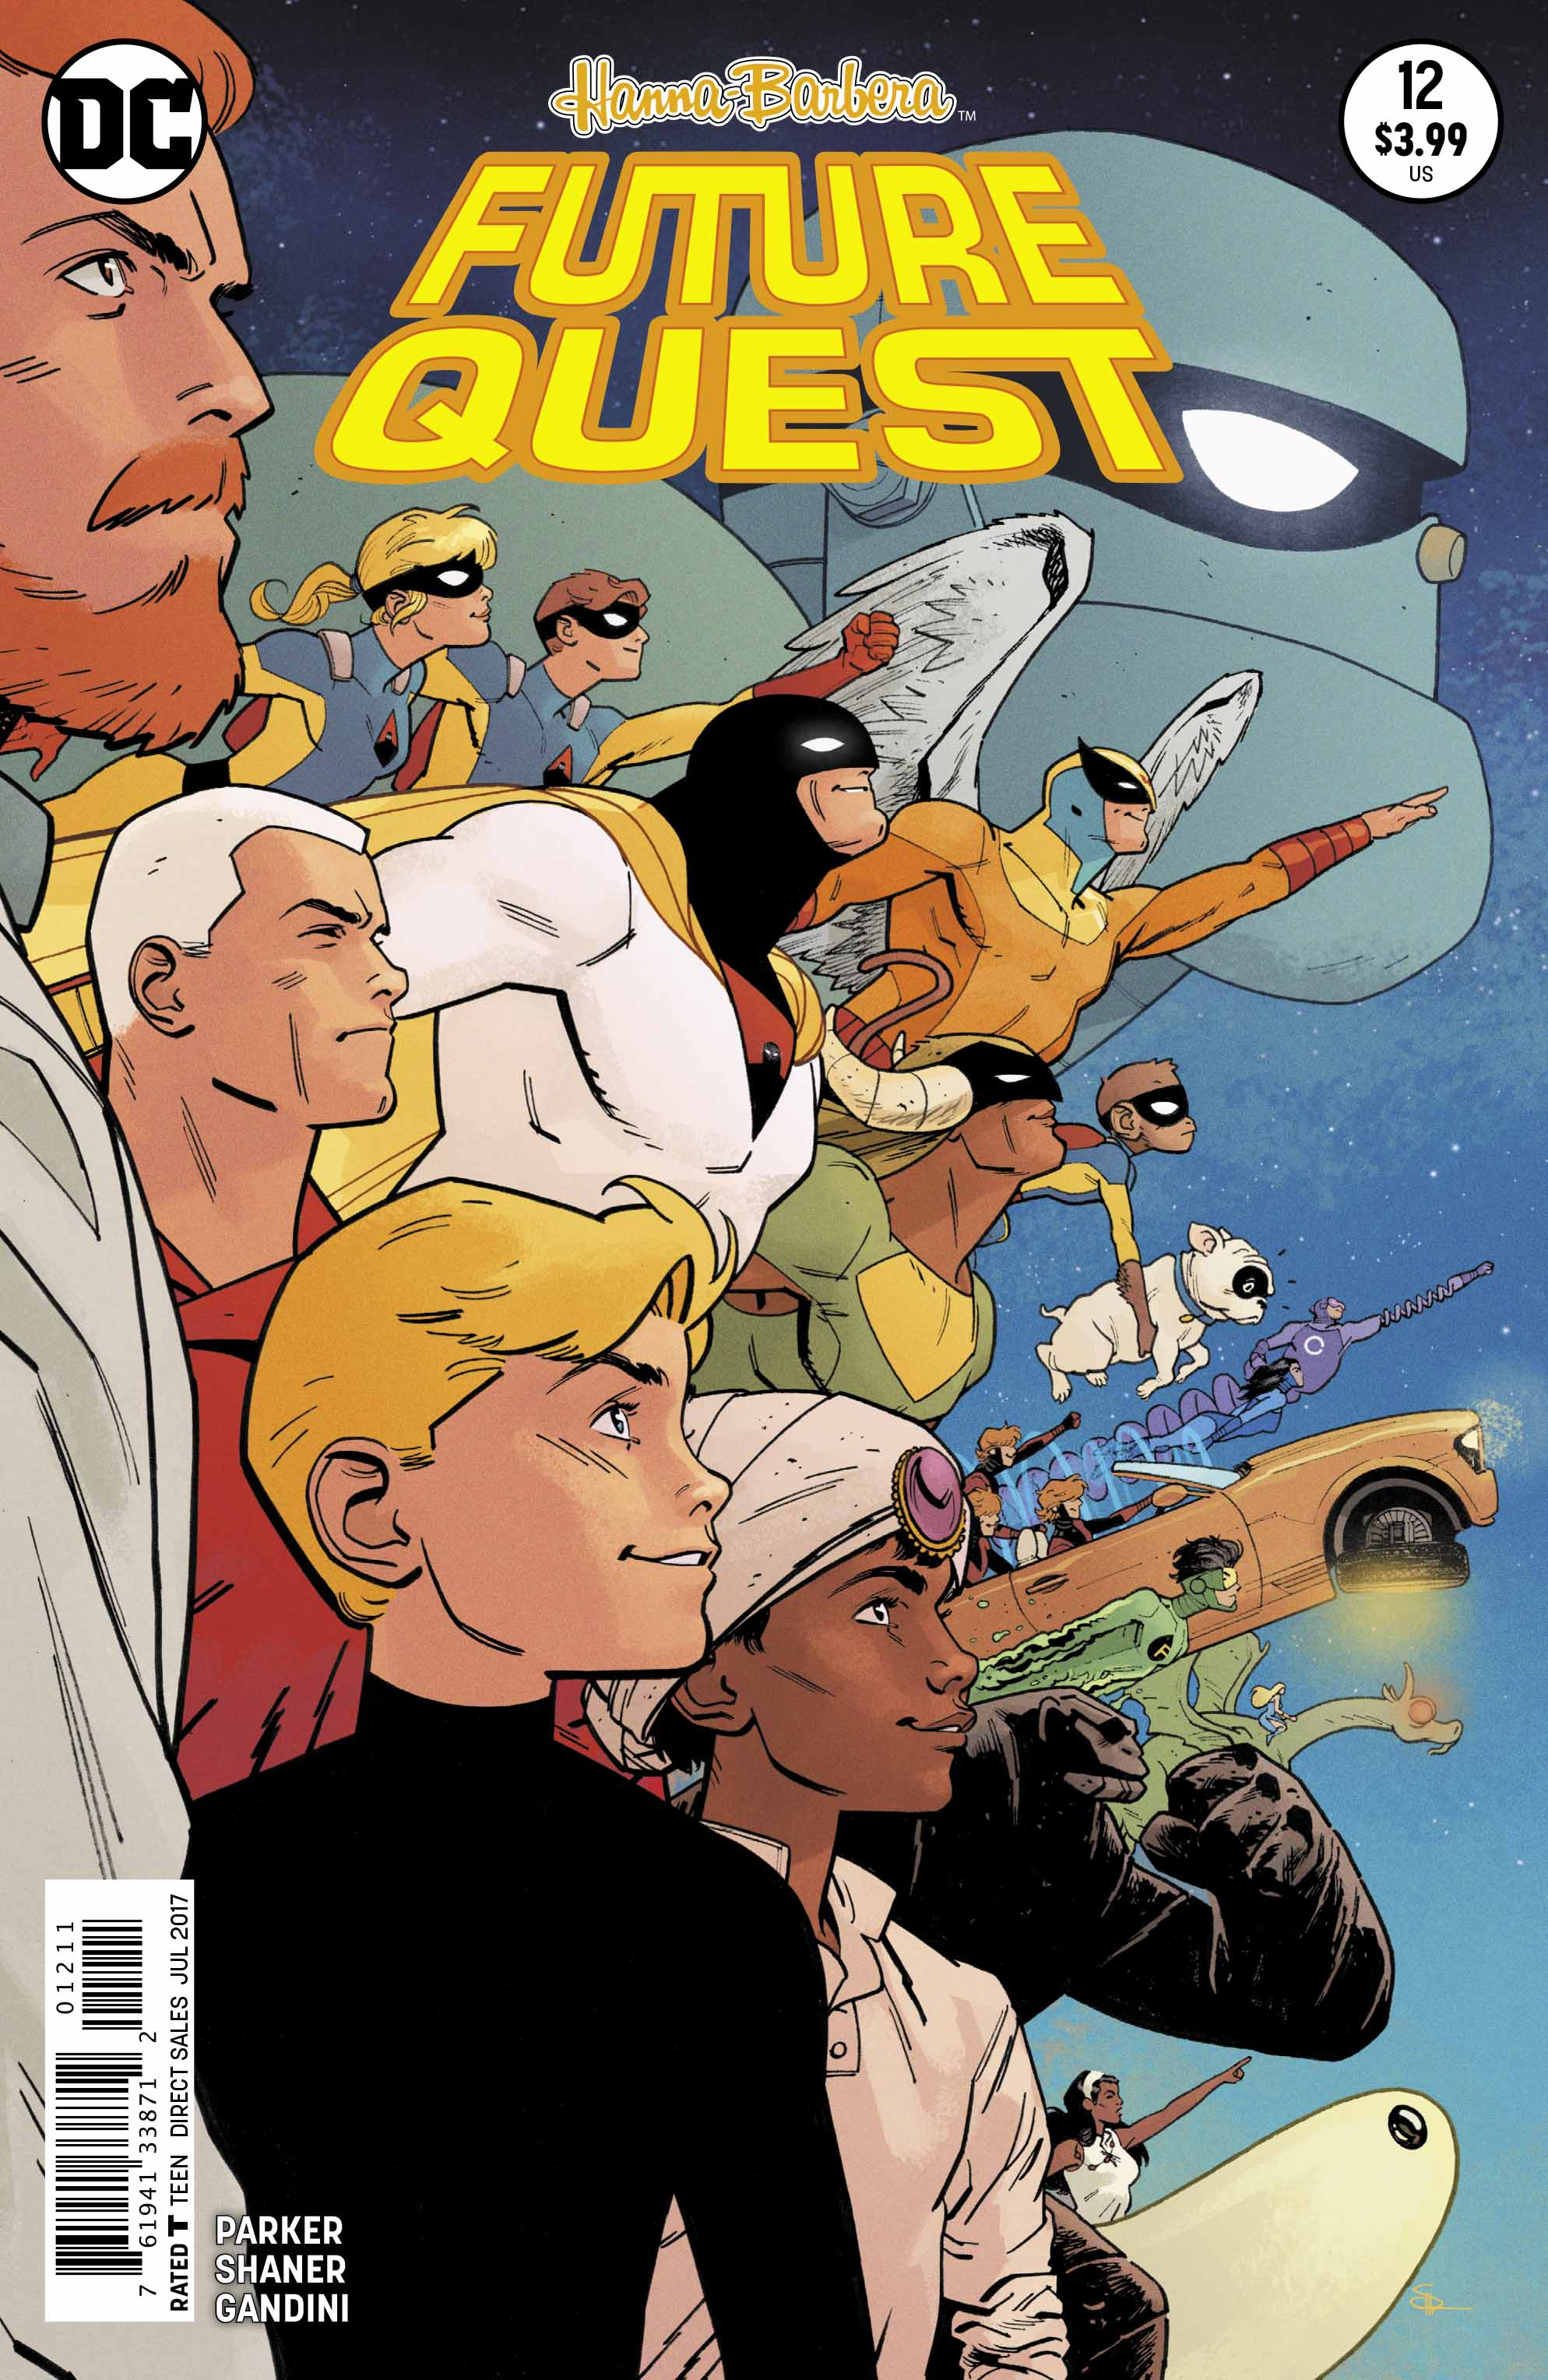 'Future Quest' comes to an end next week